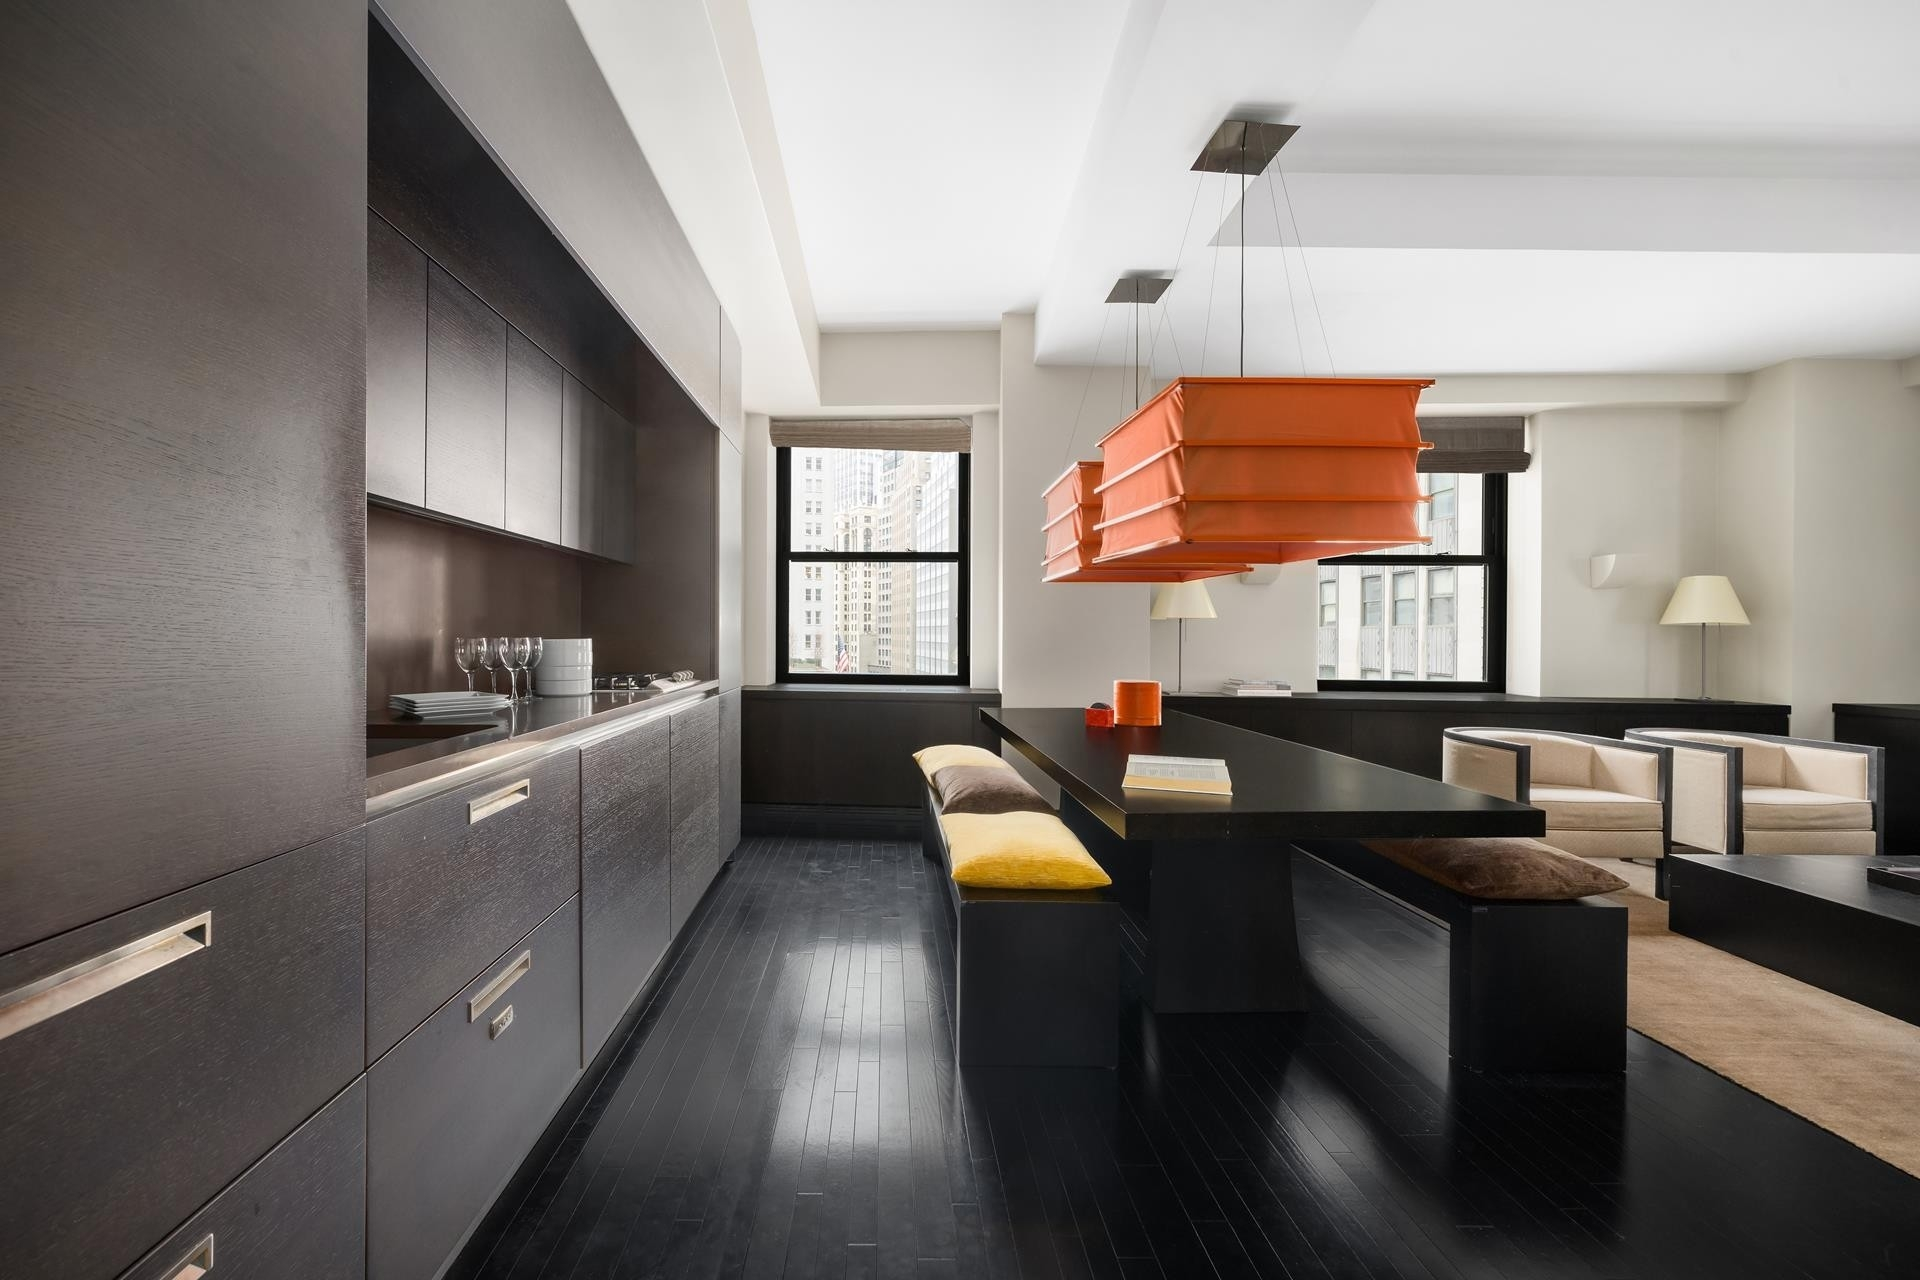 Property at 20 Pine - The Collection, 20 Pine St, 808 Financial District, New York, NY 10005